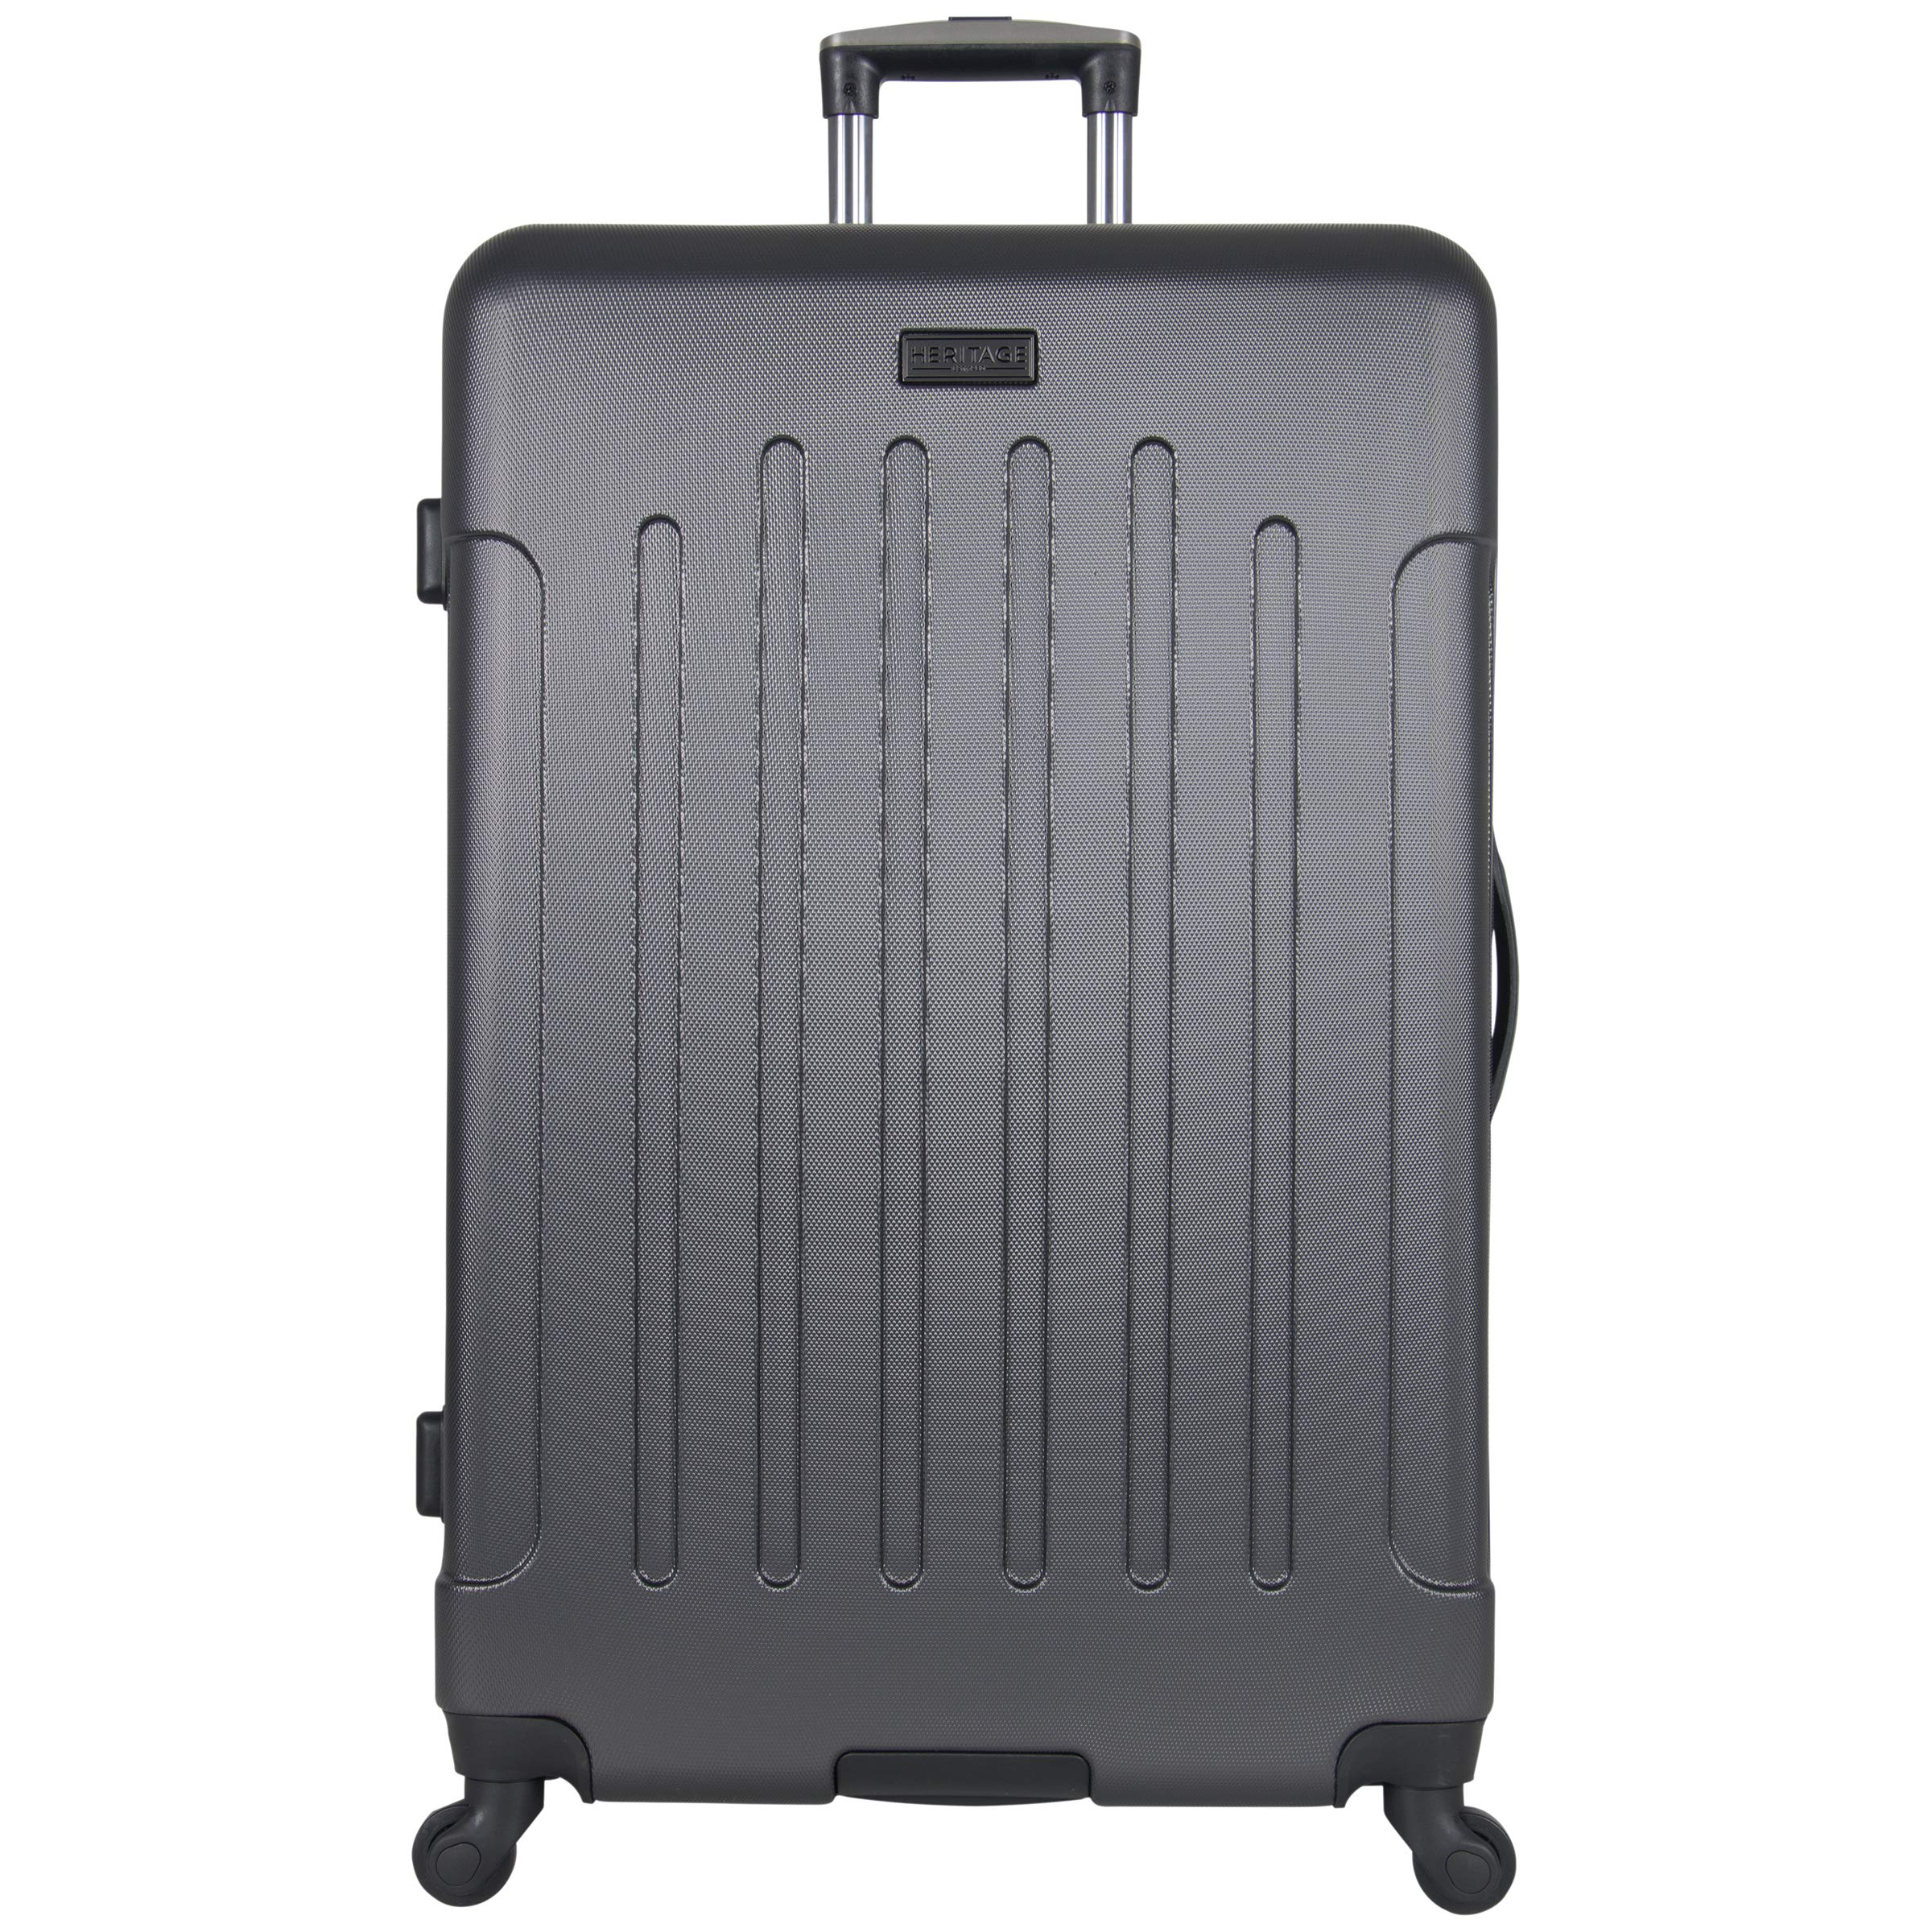 Heritage Travelware Lincoln Park 29'' Lightweight Hardside 4-Wheel Spinner Checked Luggage, Charcoal by Heritage Travelware